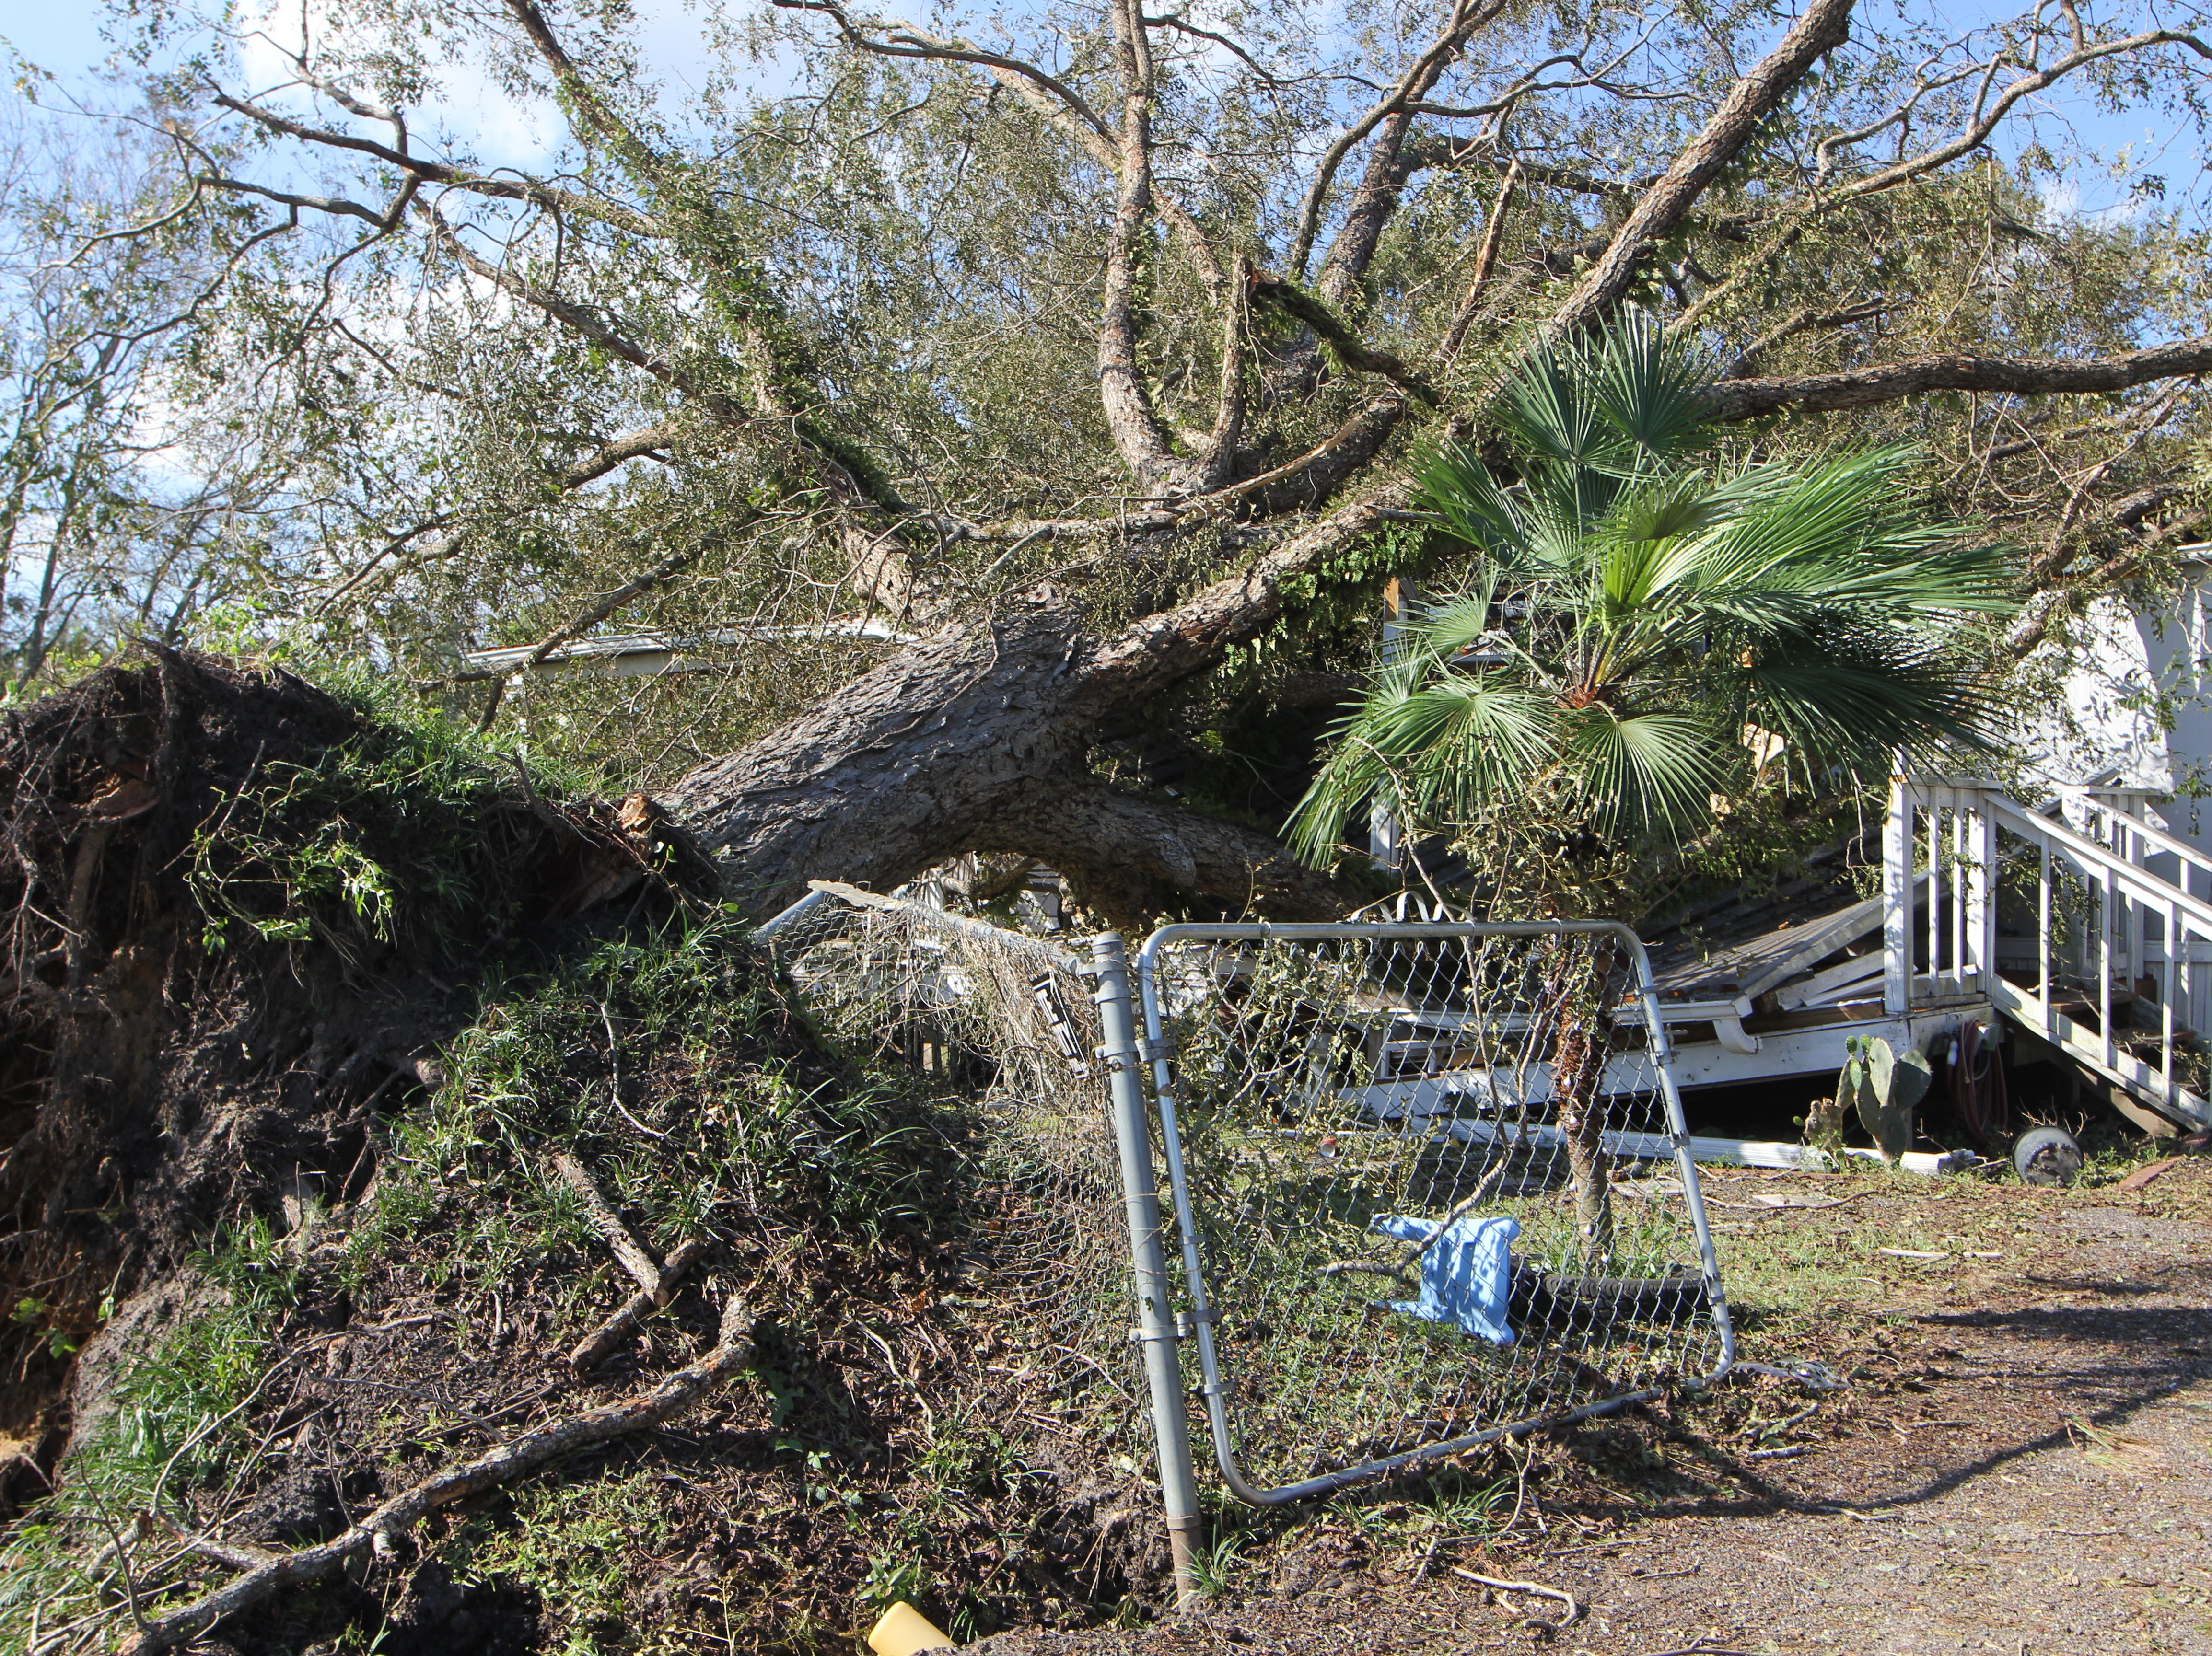 A large tree uprooted by Hurricane Michael smashes through a trailer home in Gadsden County.